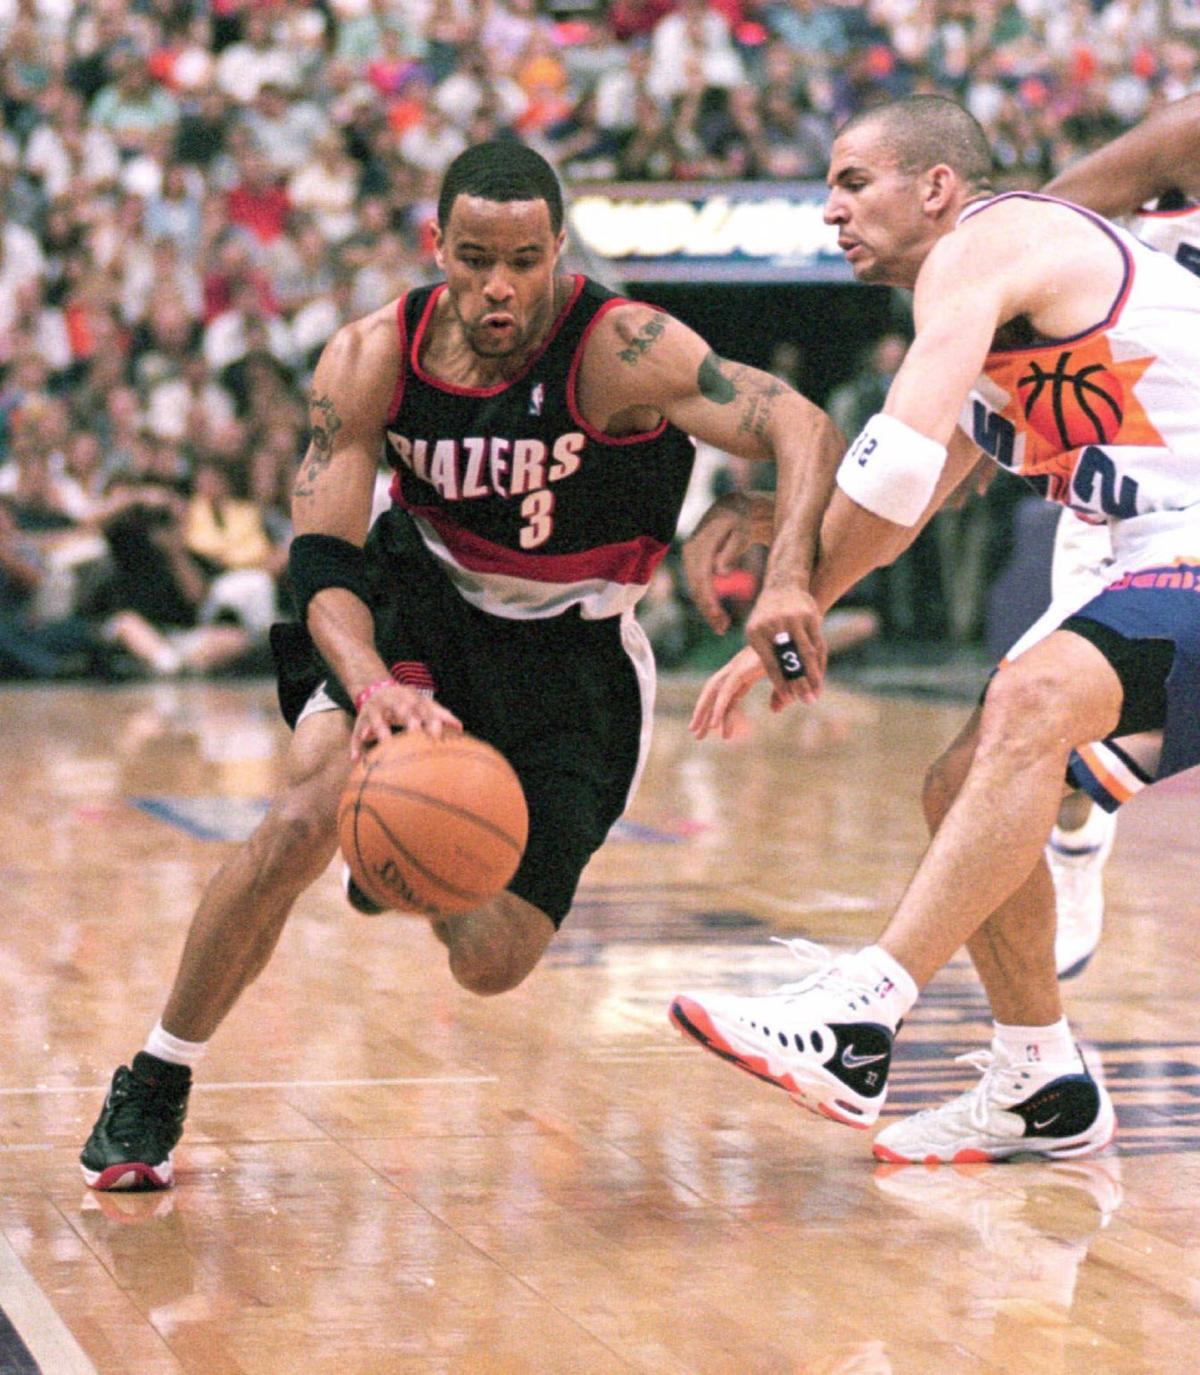 Portland Blazers Tonight: 6. Damon Stoudamire, $100.5 Million